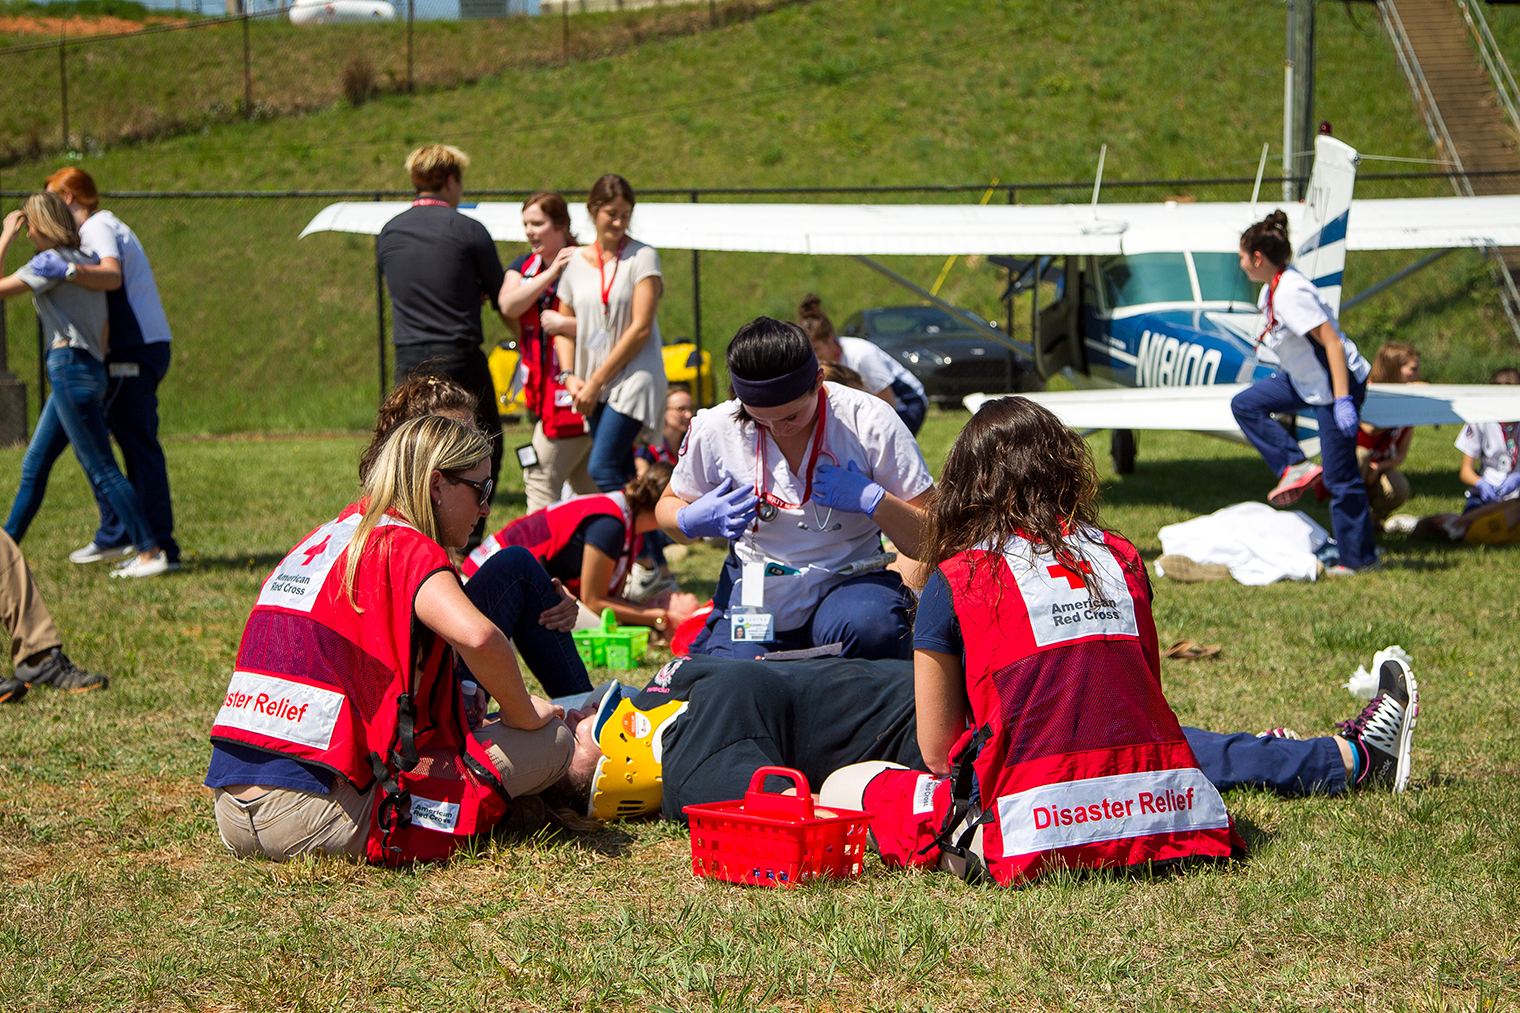 A simulated plane crash at Lynchburg Regional Airport gave aeronautics and nursing students the opportunity to test their mettle in the field. (Photos by Leah Seavers)